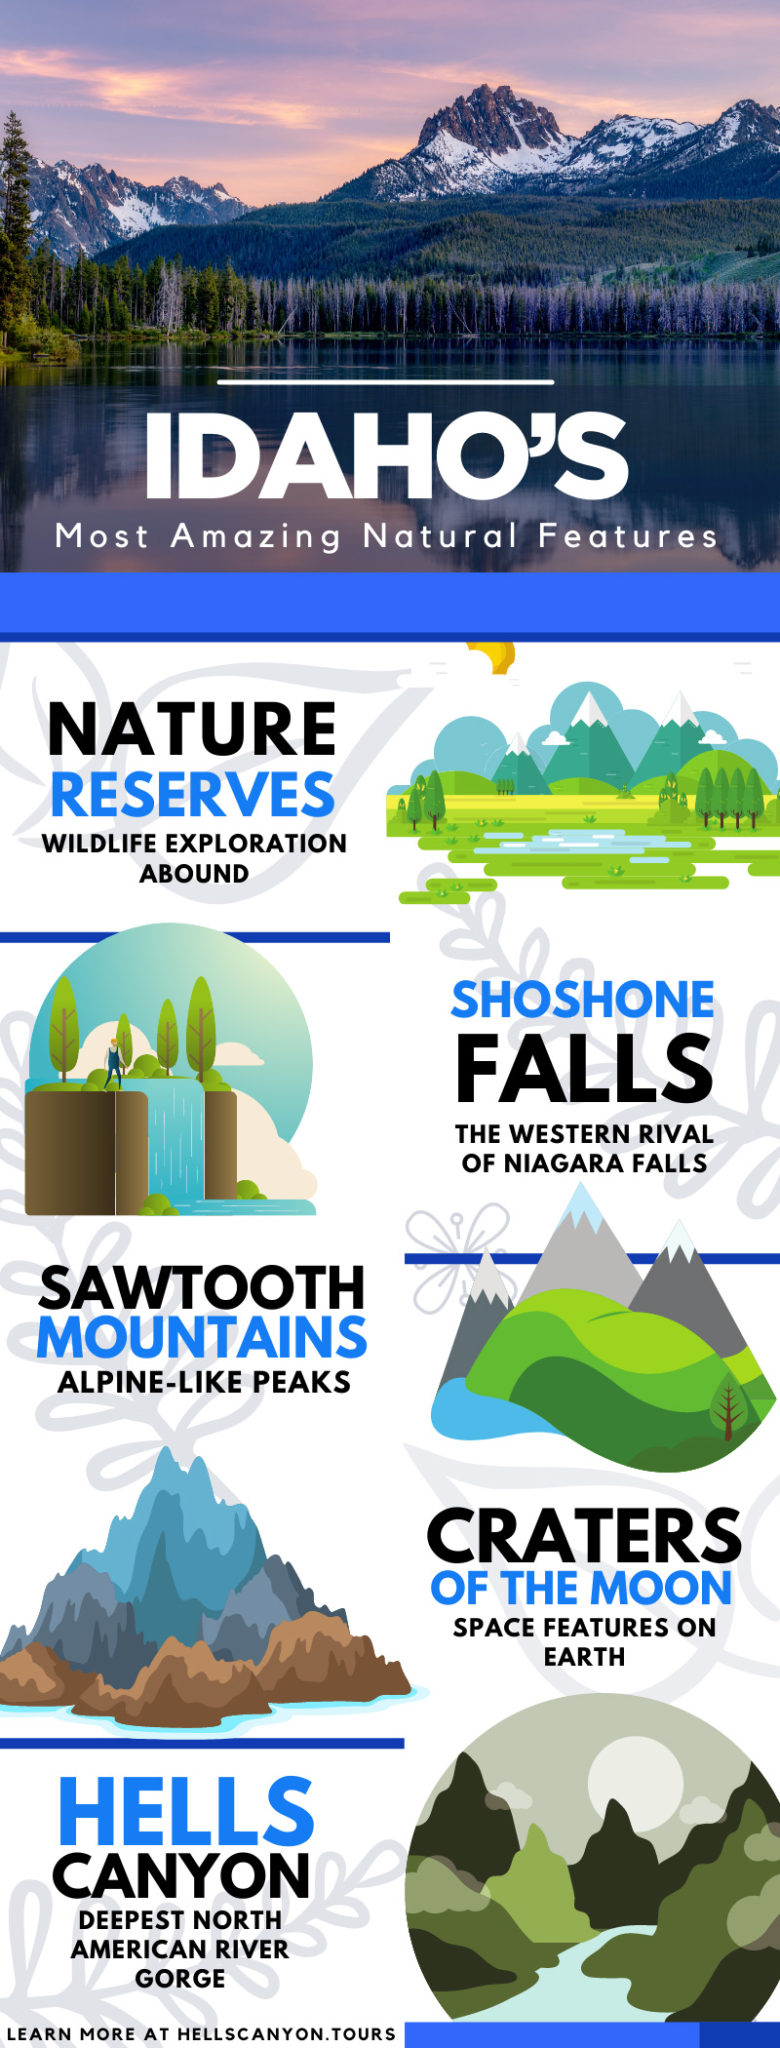 Idaho's Most Amazing Natural Features